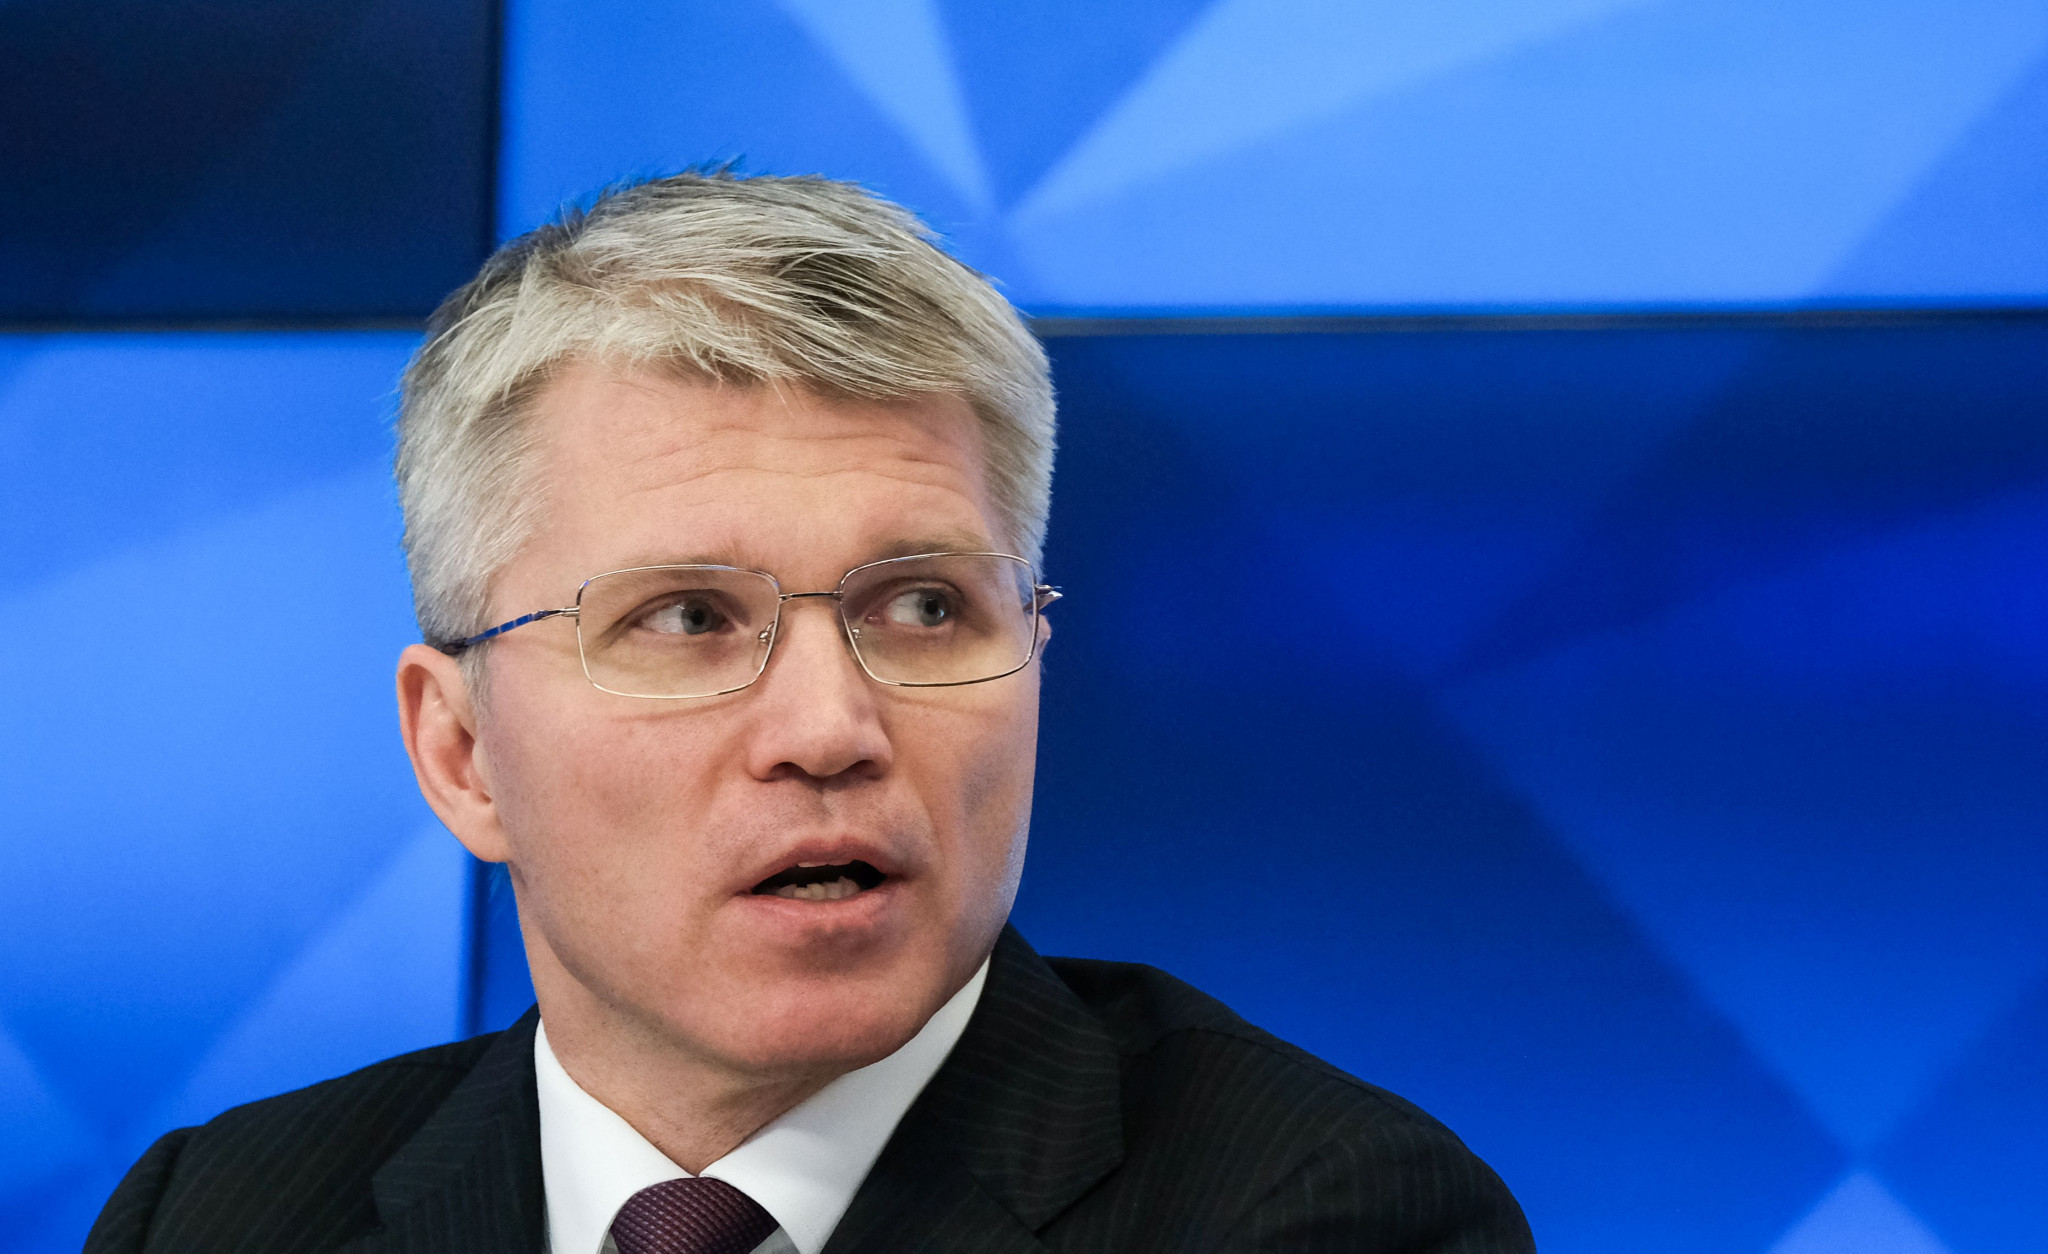 Russian Sports Minister Pavel Kolobkov has called on the IOC to let athletes who won their appeals the chance to compete at Pyeongchang 2018 ©Getty Images